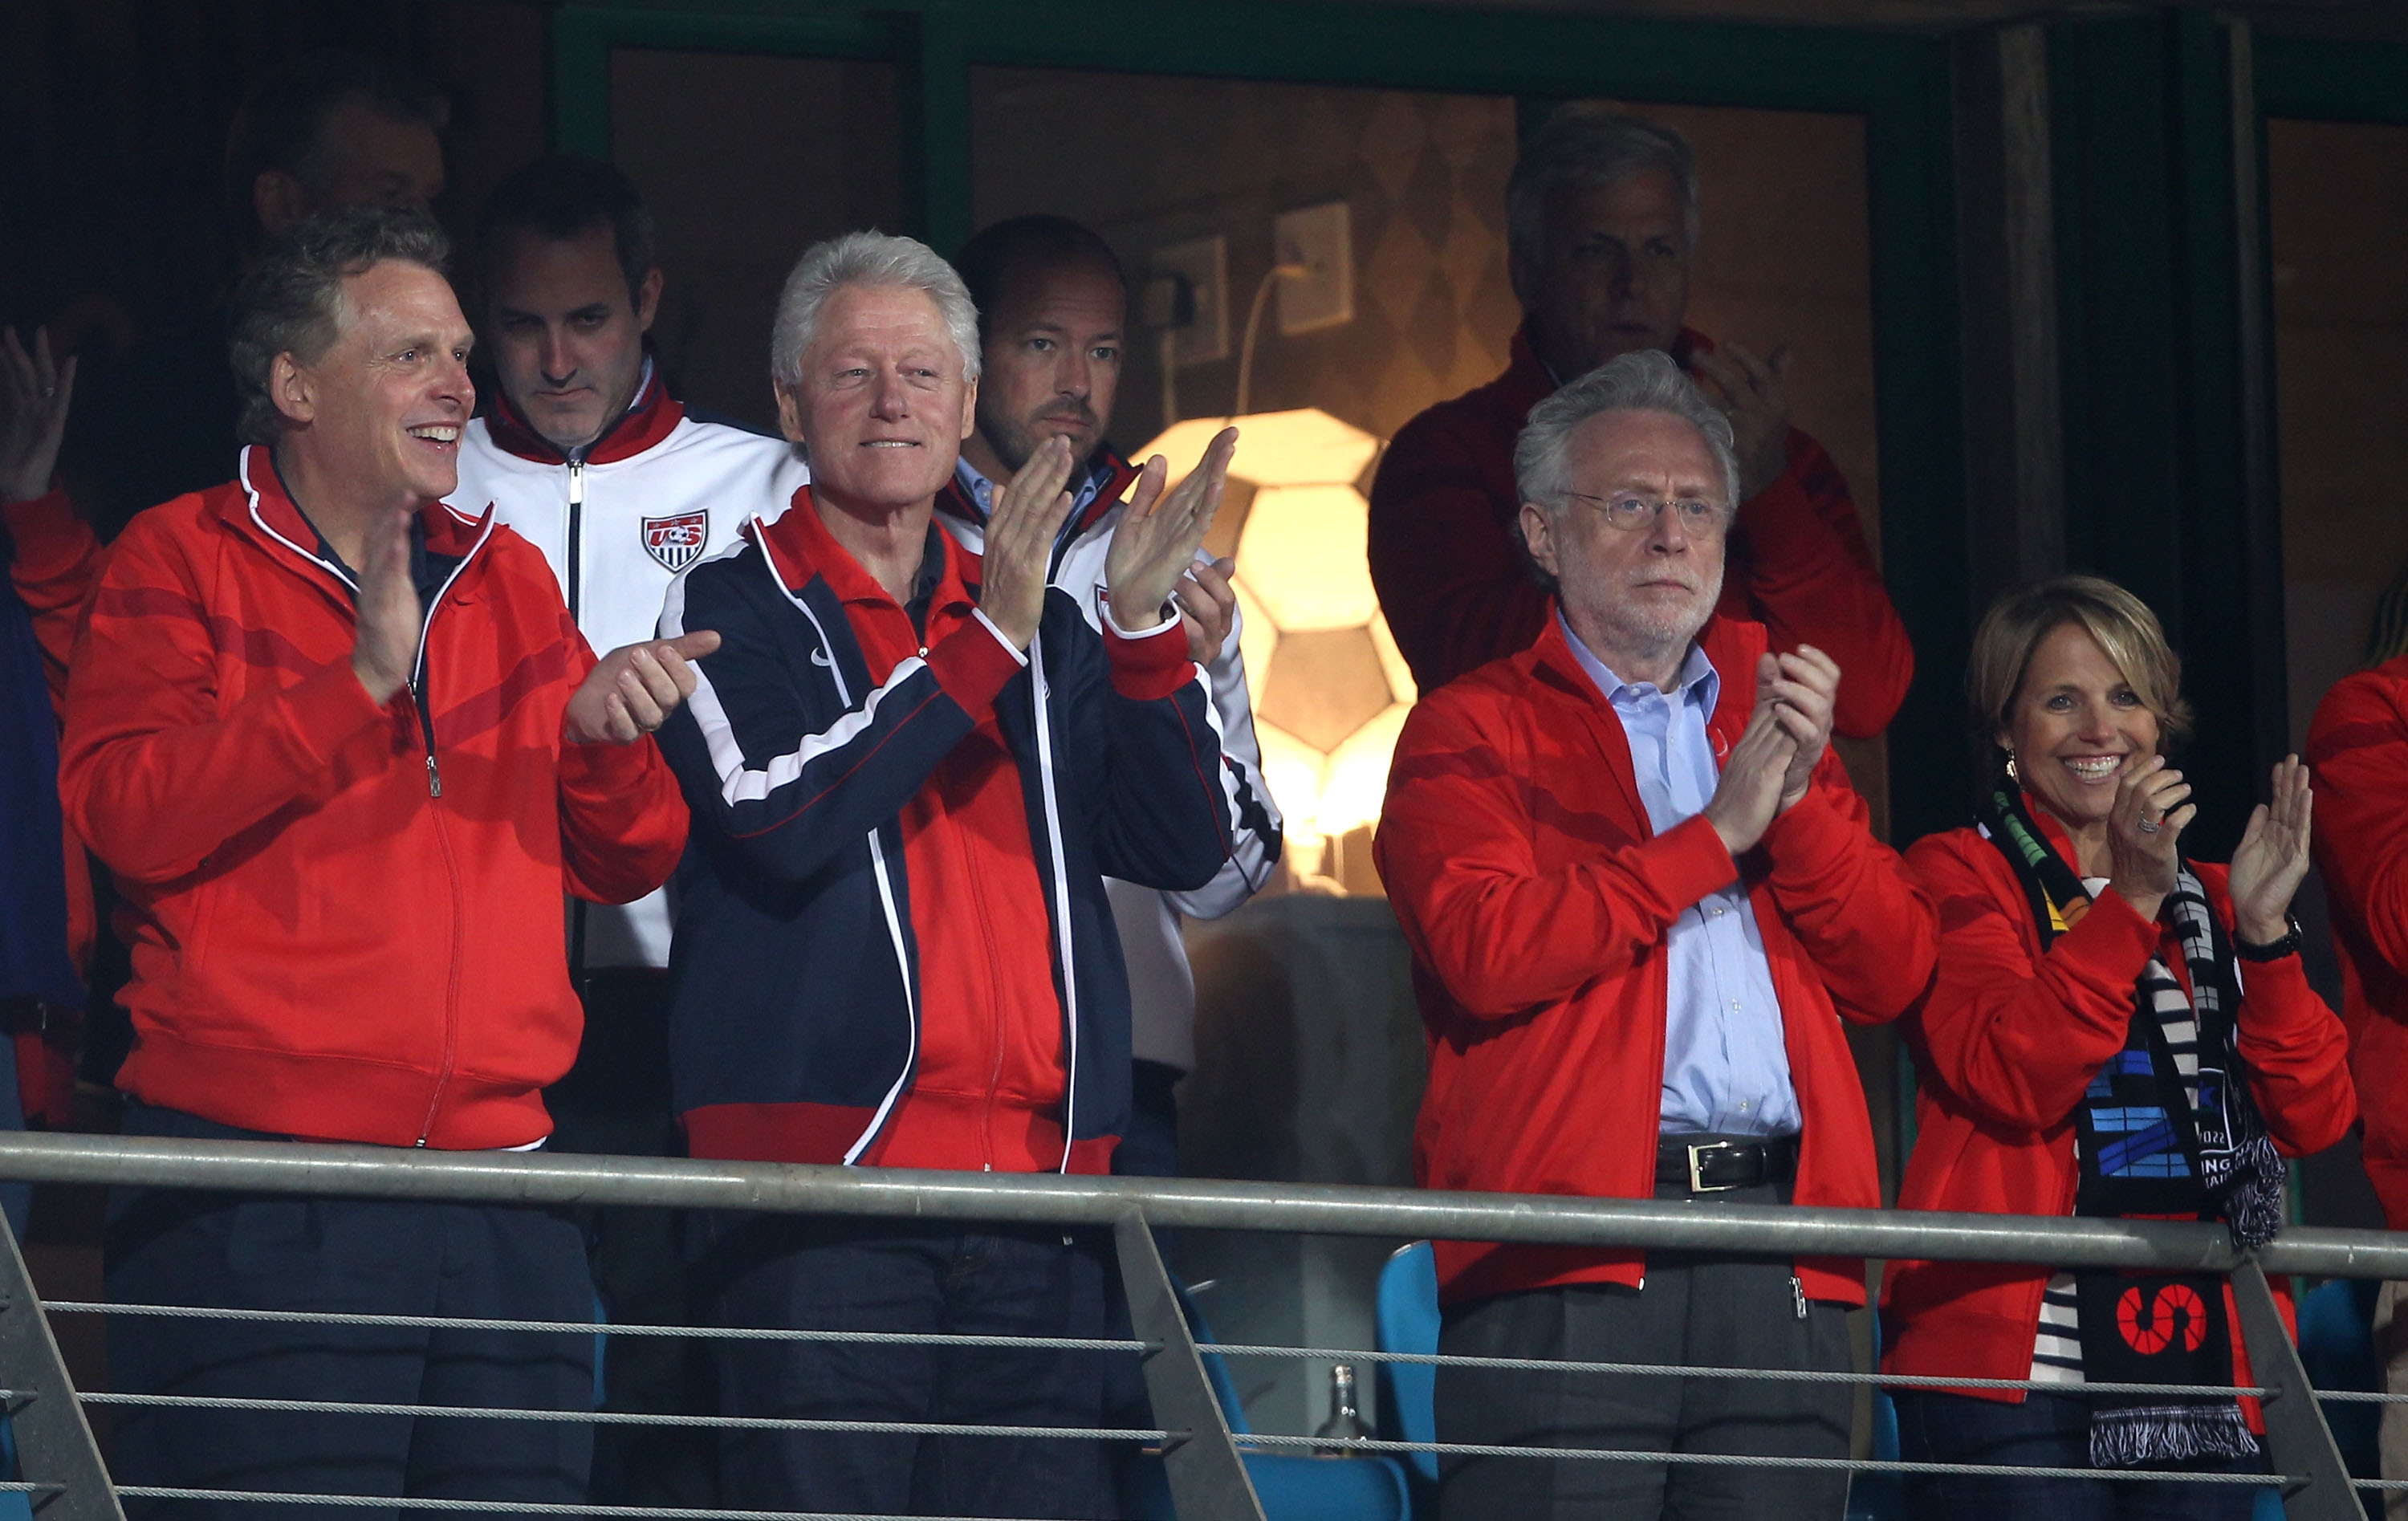 RUSTENBURG, SOUTH AFRICA - JUNE 26:  Former US President Bill Clinton stands for the national anthem with US news anchors Wolf Blitzer (2ndR) and Katie Couric (R) prior to the 2010 FIFA World Cup South Africa Round of Sixteen match between USA and Ghana a